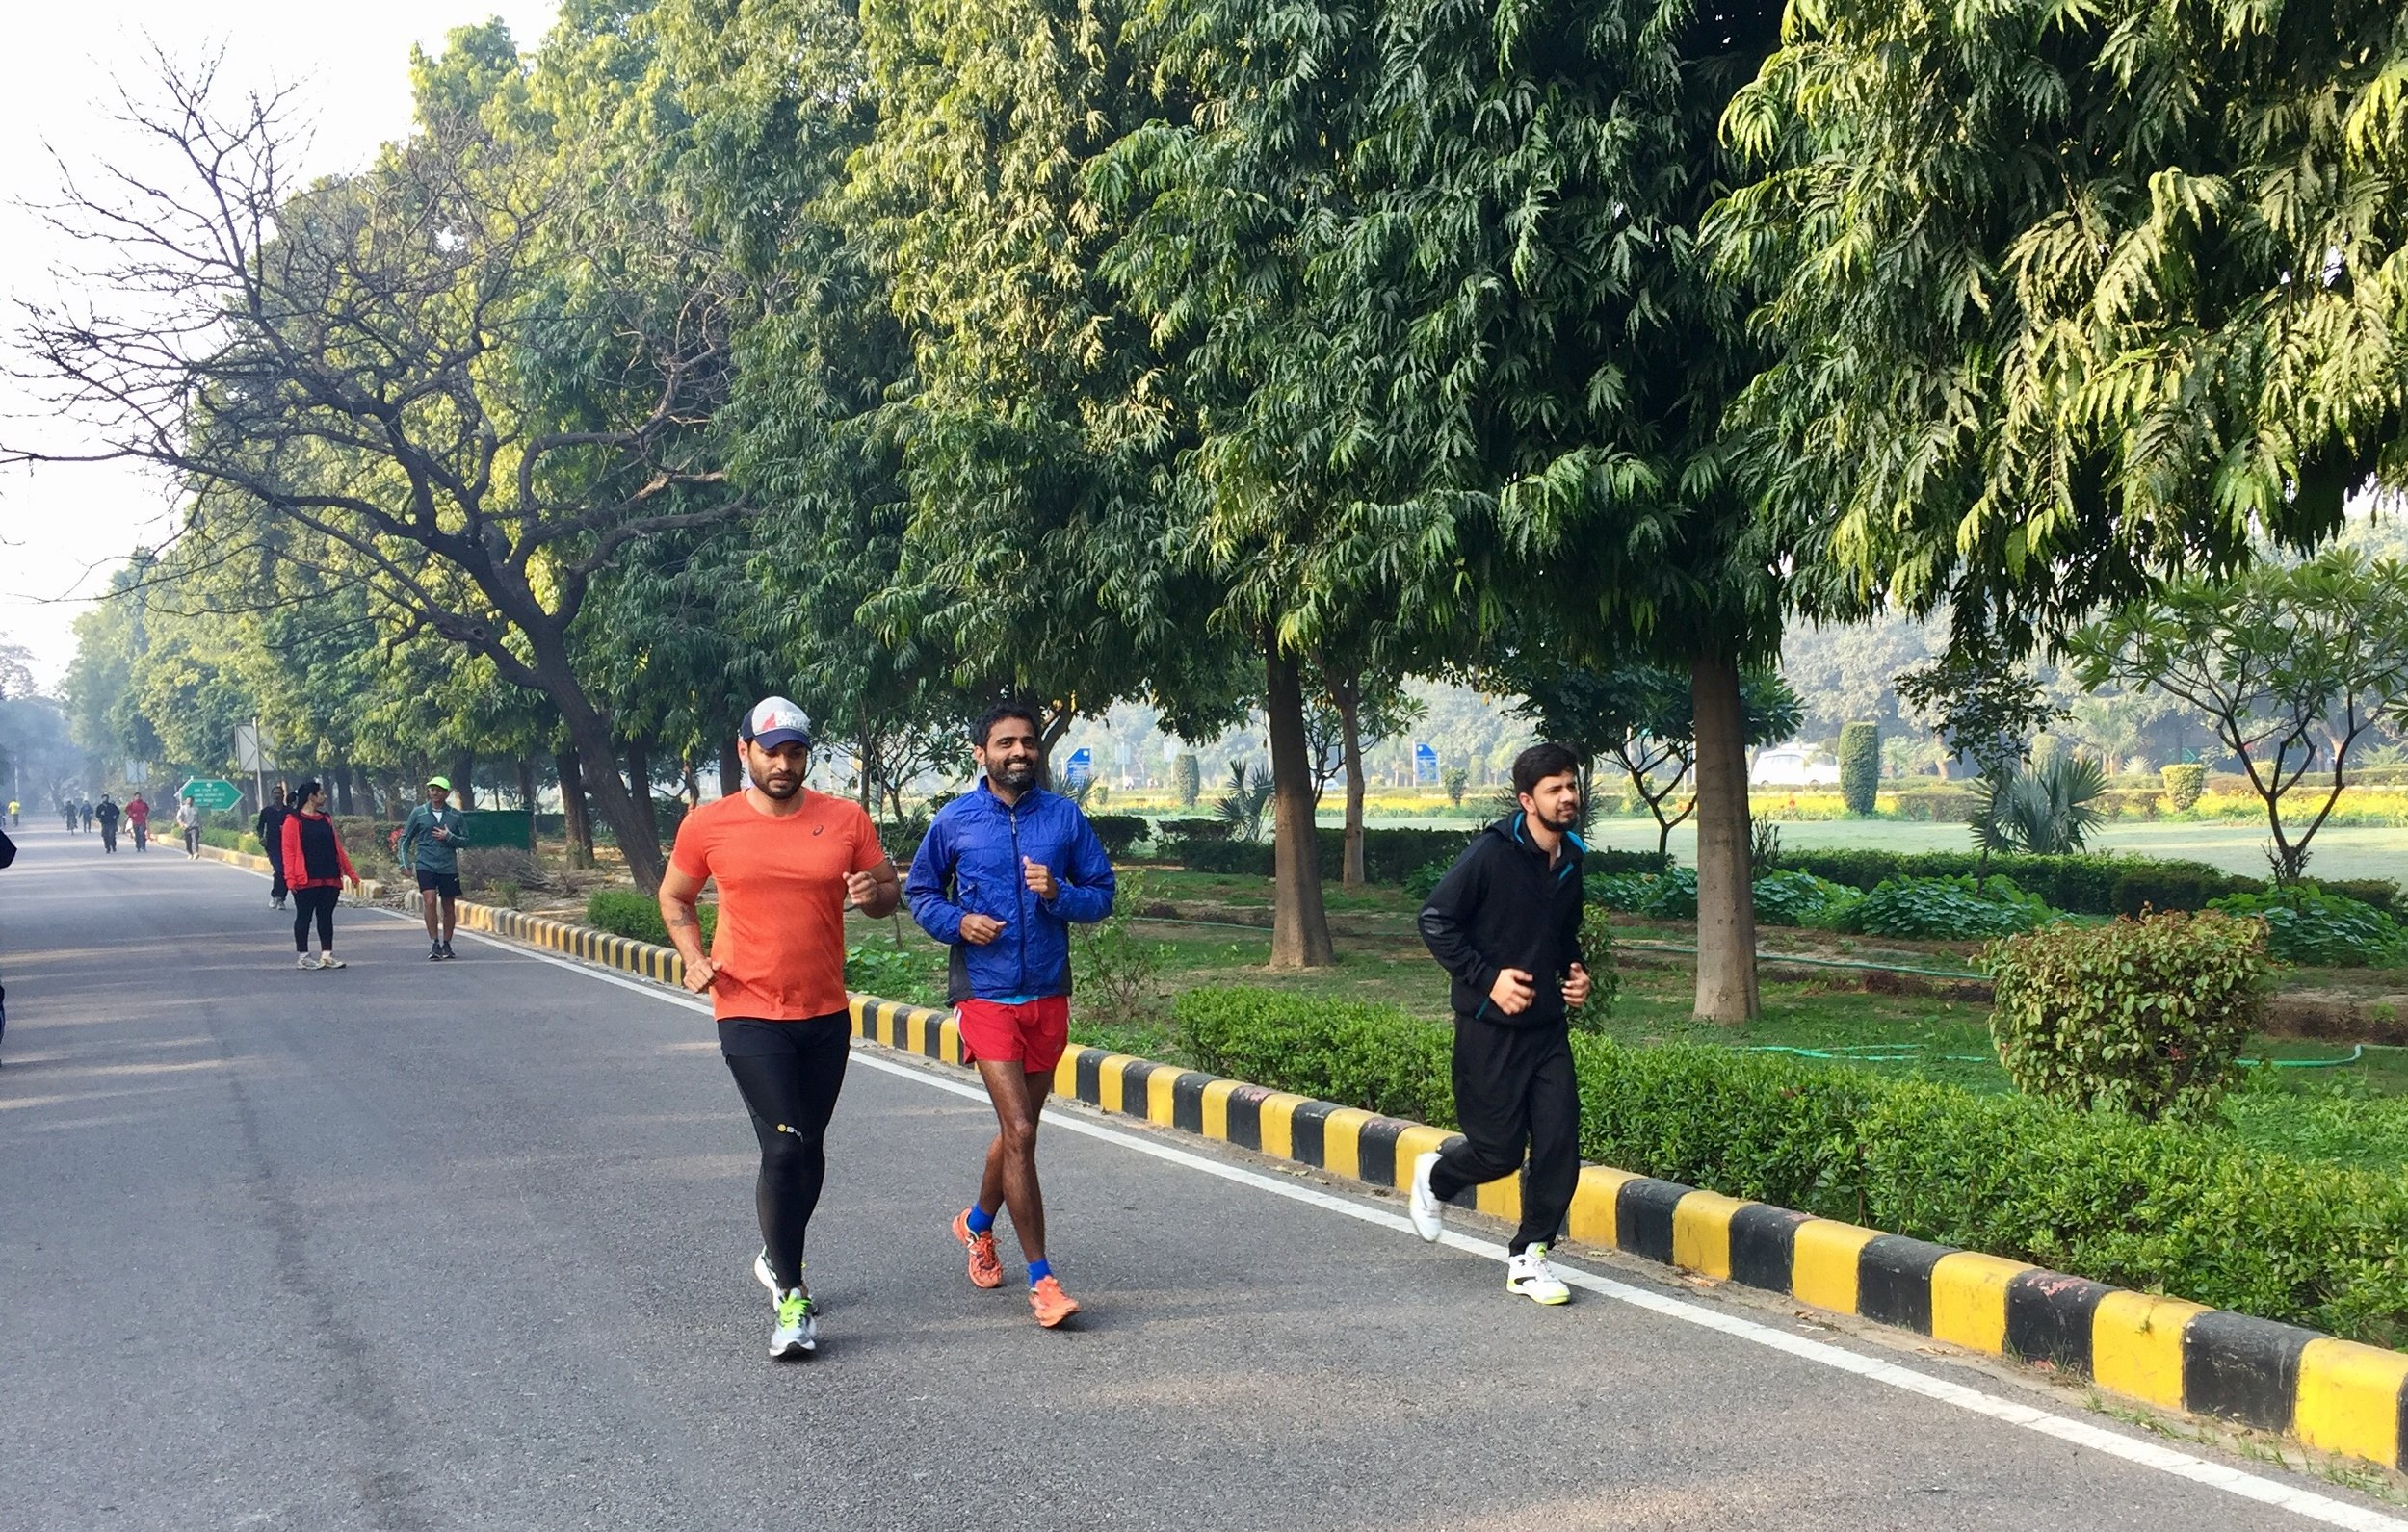 You make great friends while running. Percy (in blue) ran 111 km with me on these roads on 11.11.11